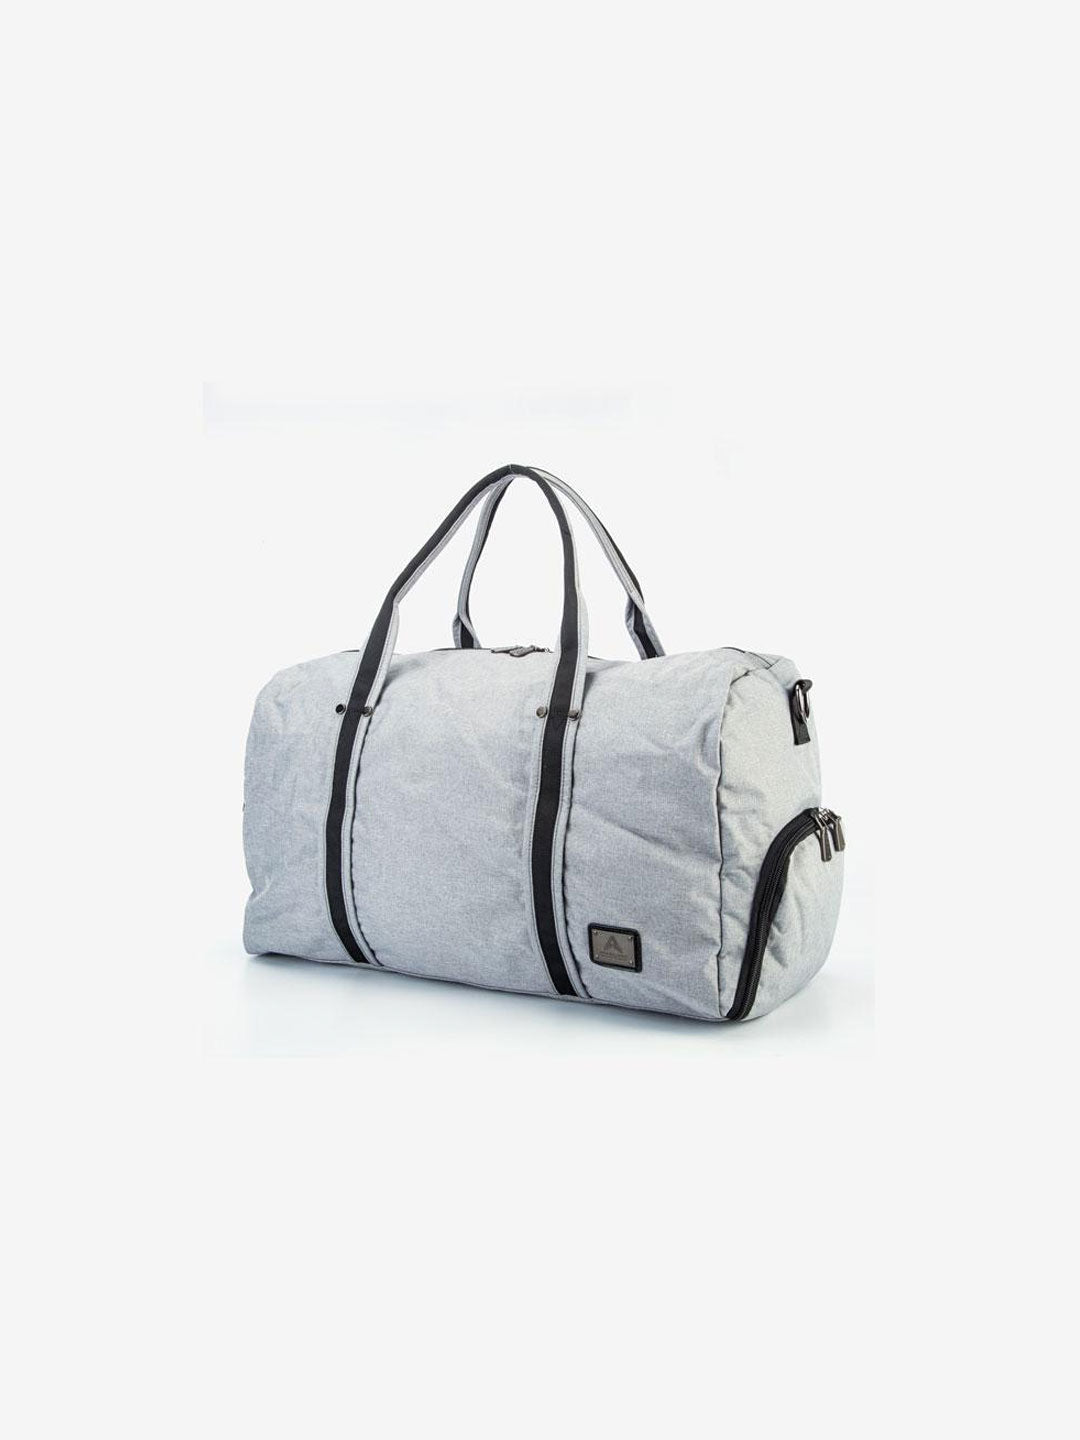 The Trainer Bag in Oatmeal